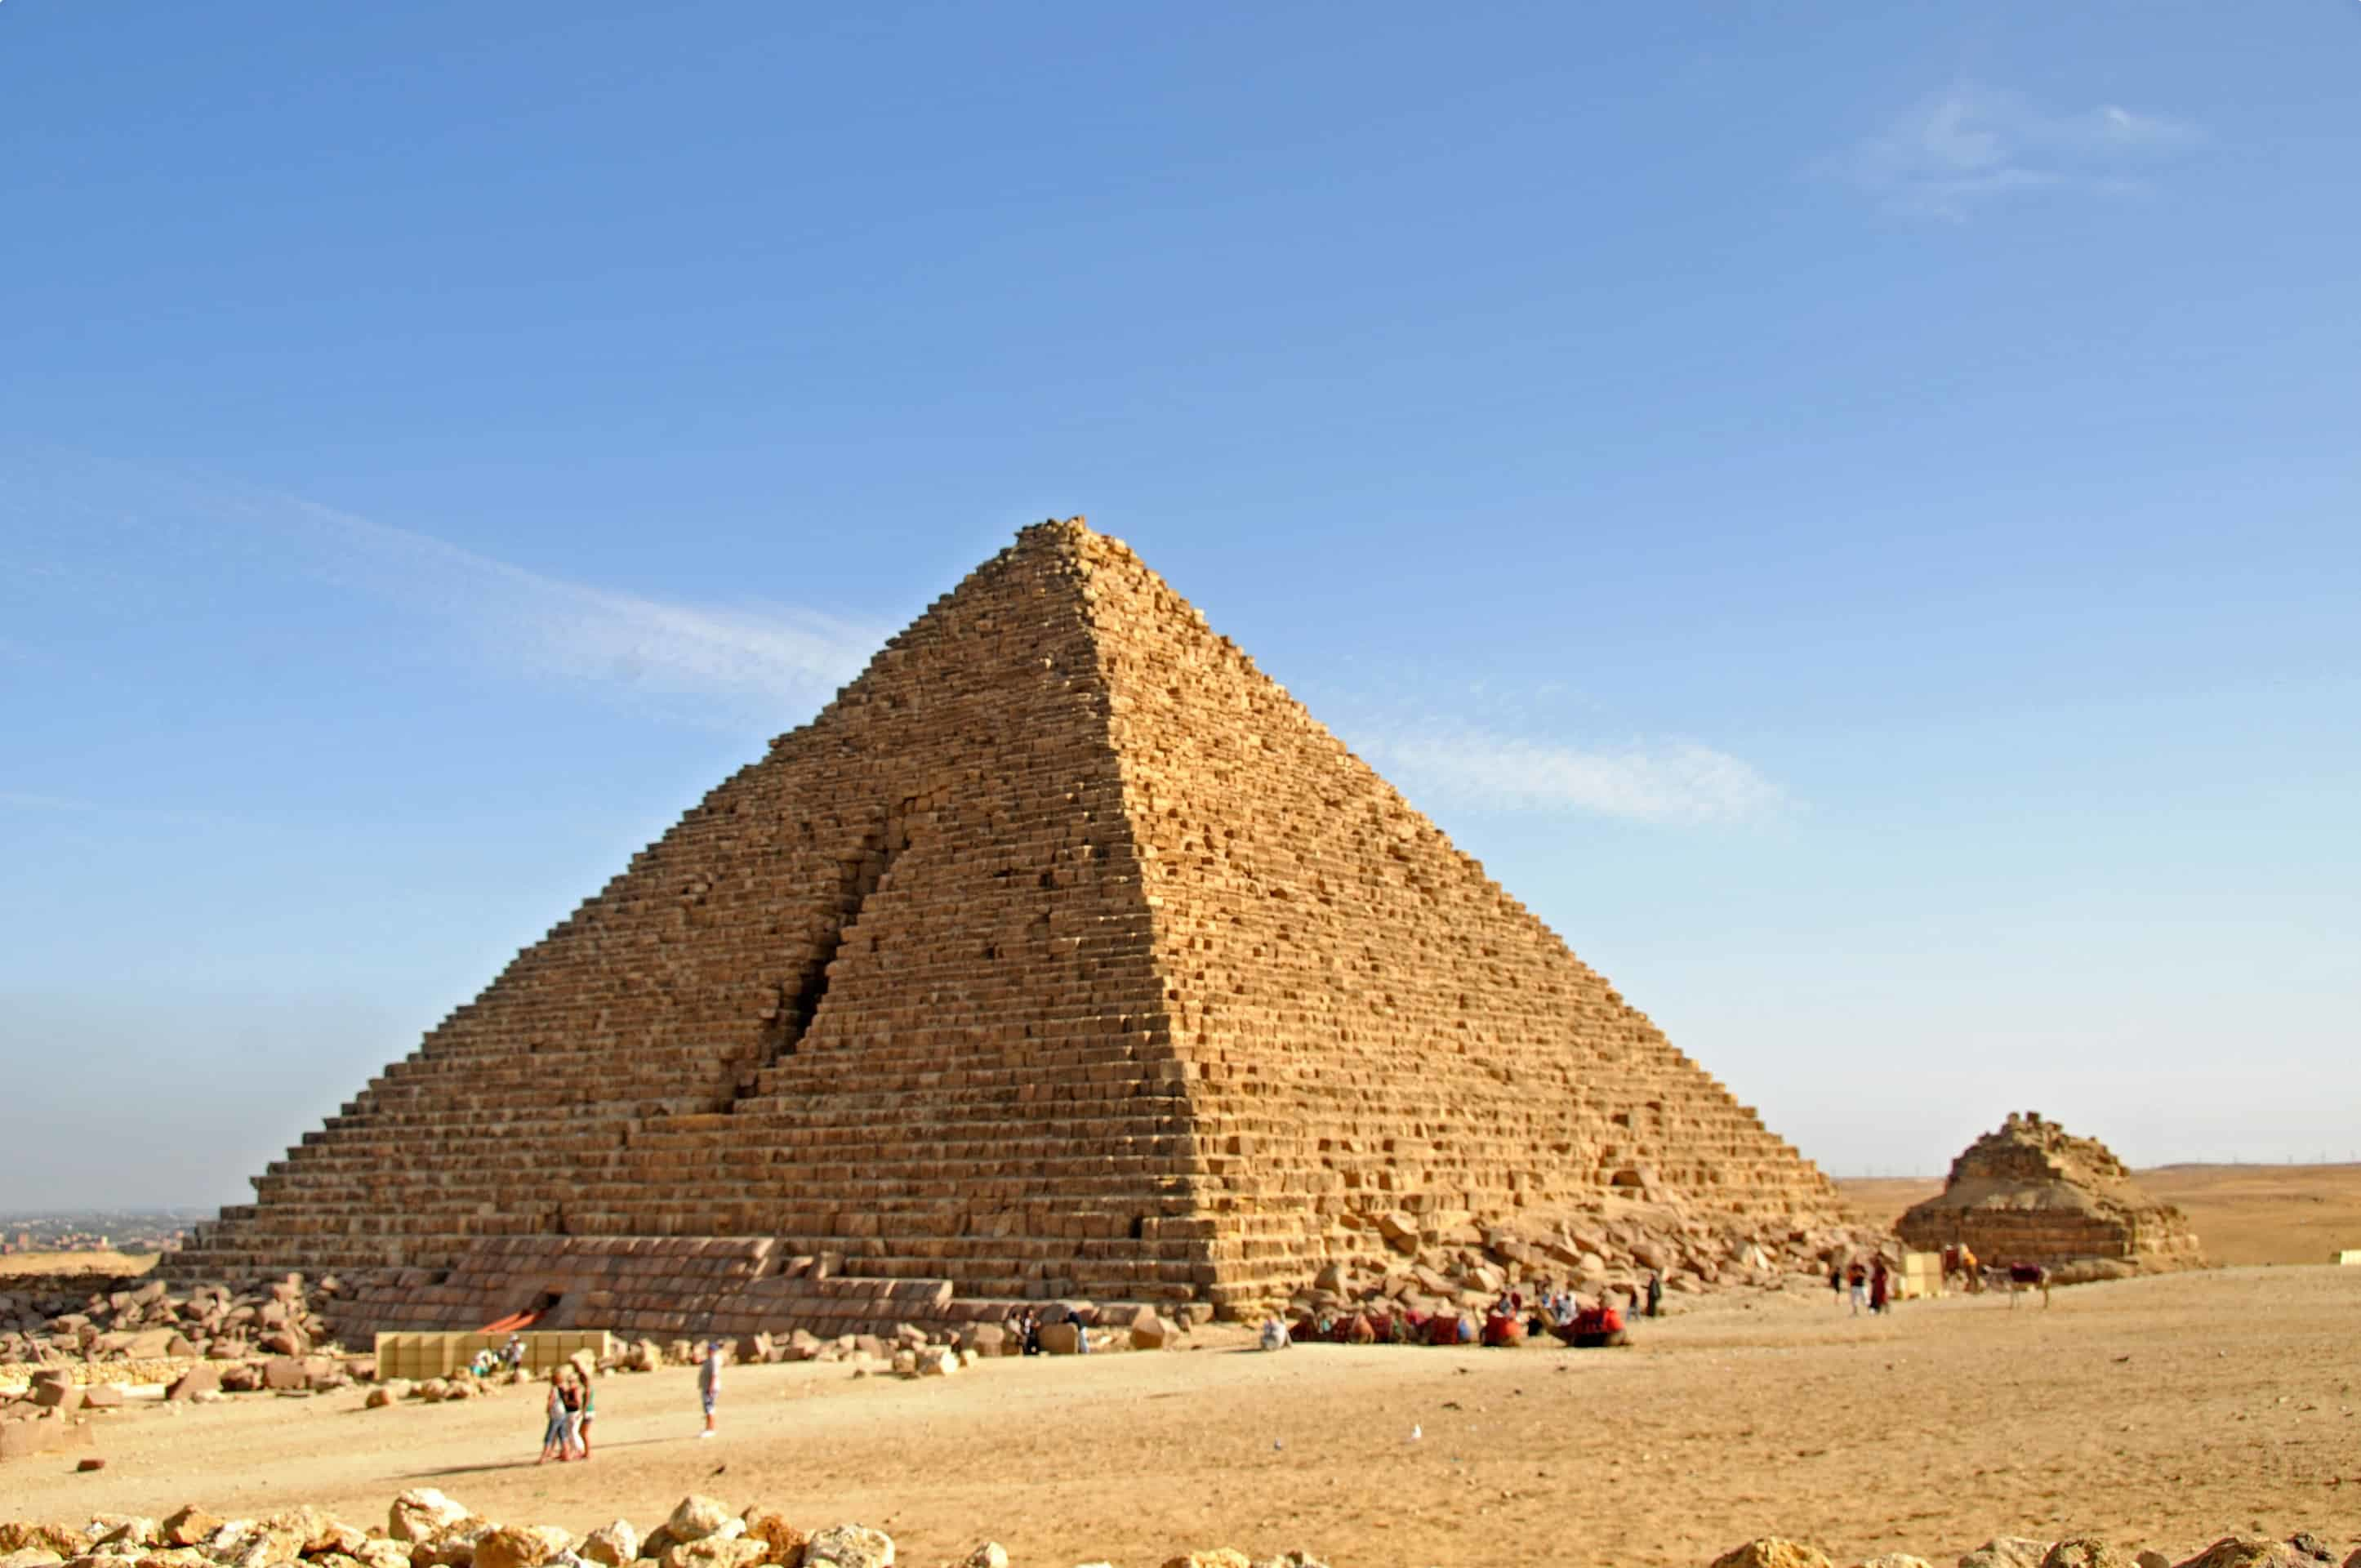 Pyramid of Menkaure, the smallest of the three pyramids